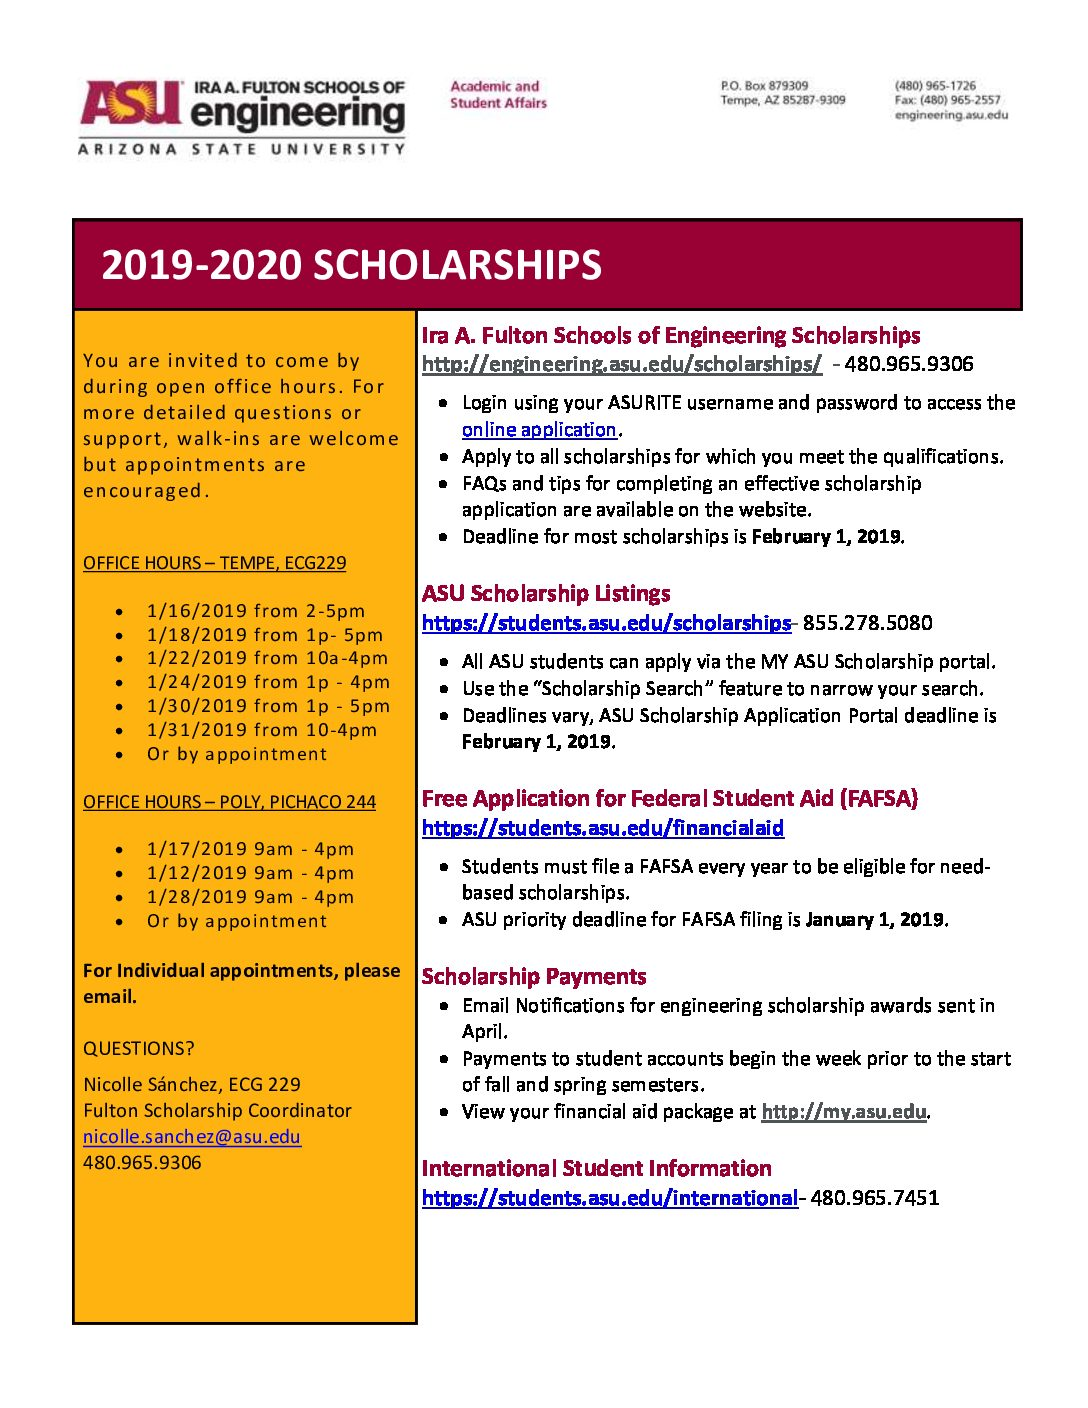 Apply for the 2019-2020 Scholarships!